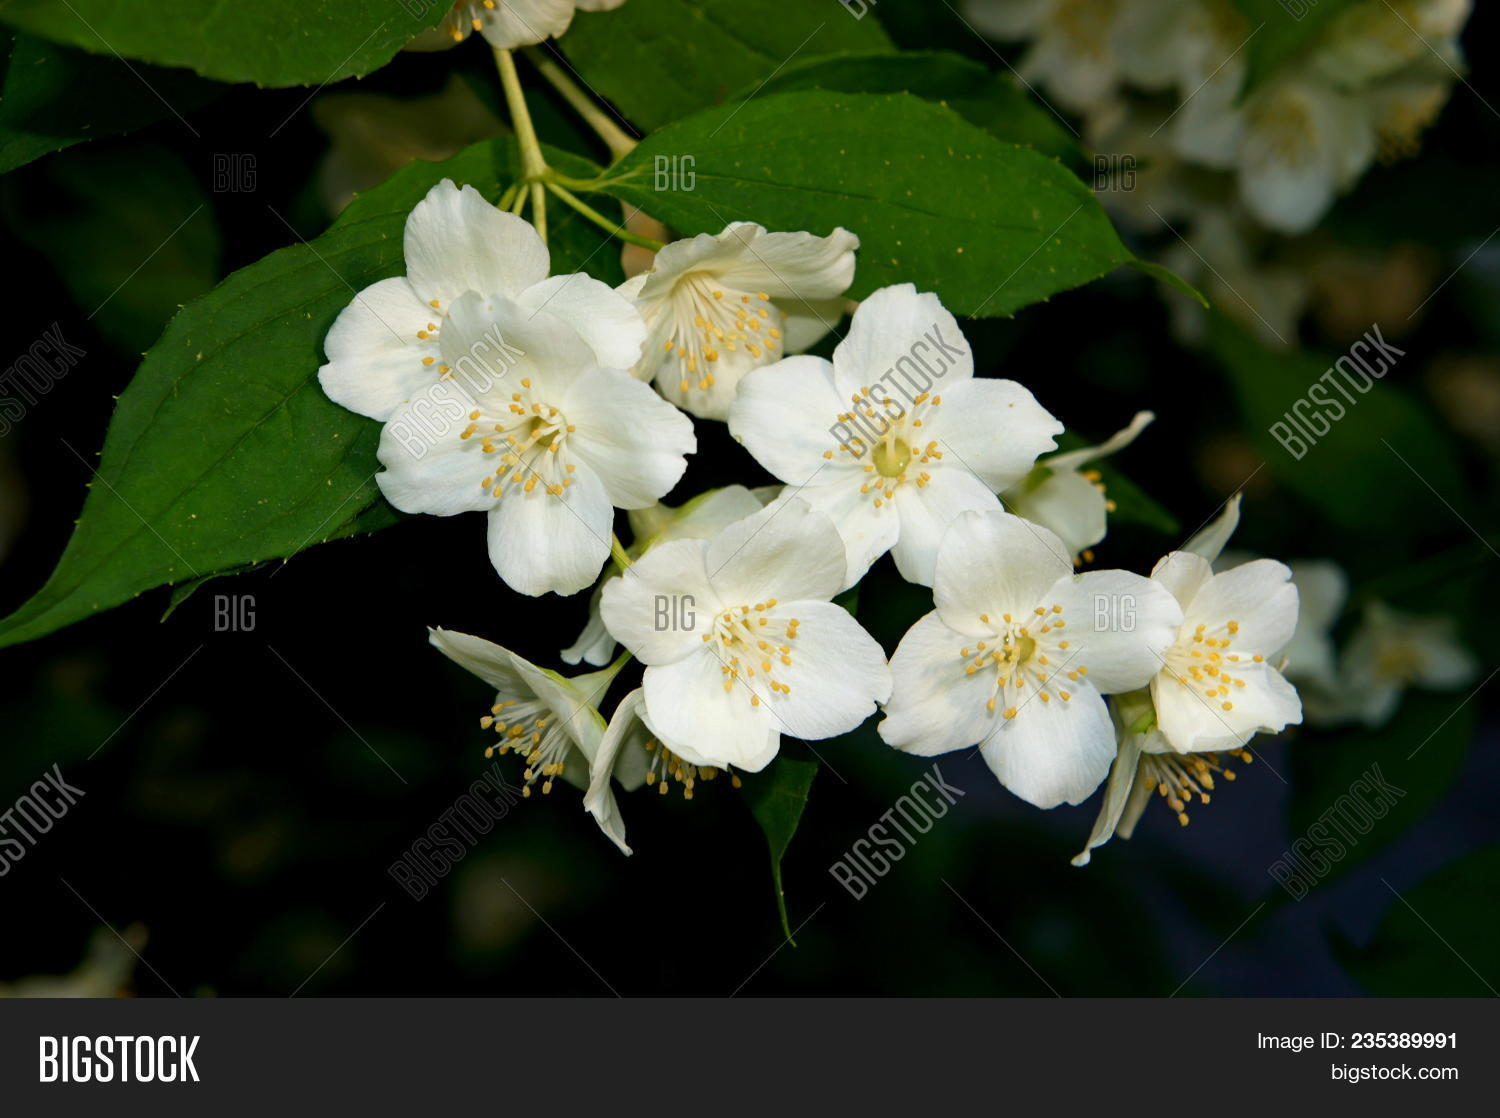 Jasmine Flower Branch Image Photo Free Trial Bigstock